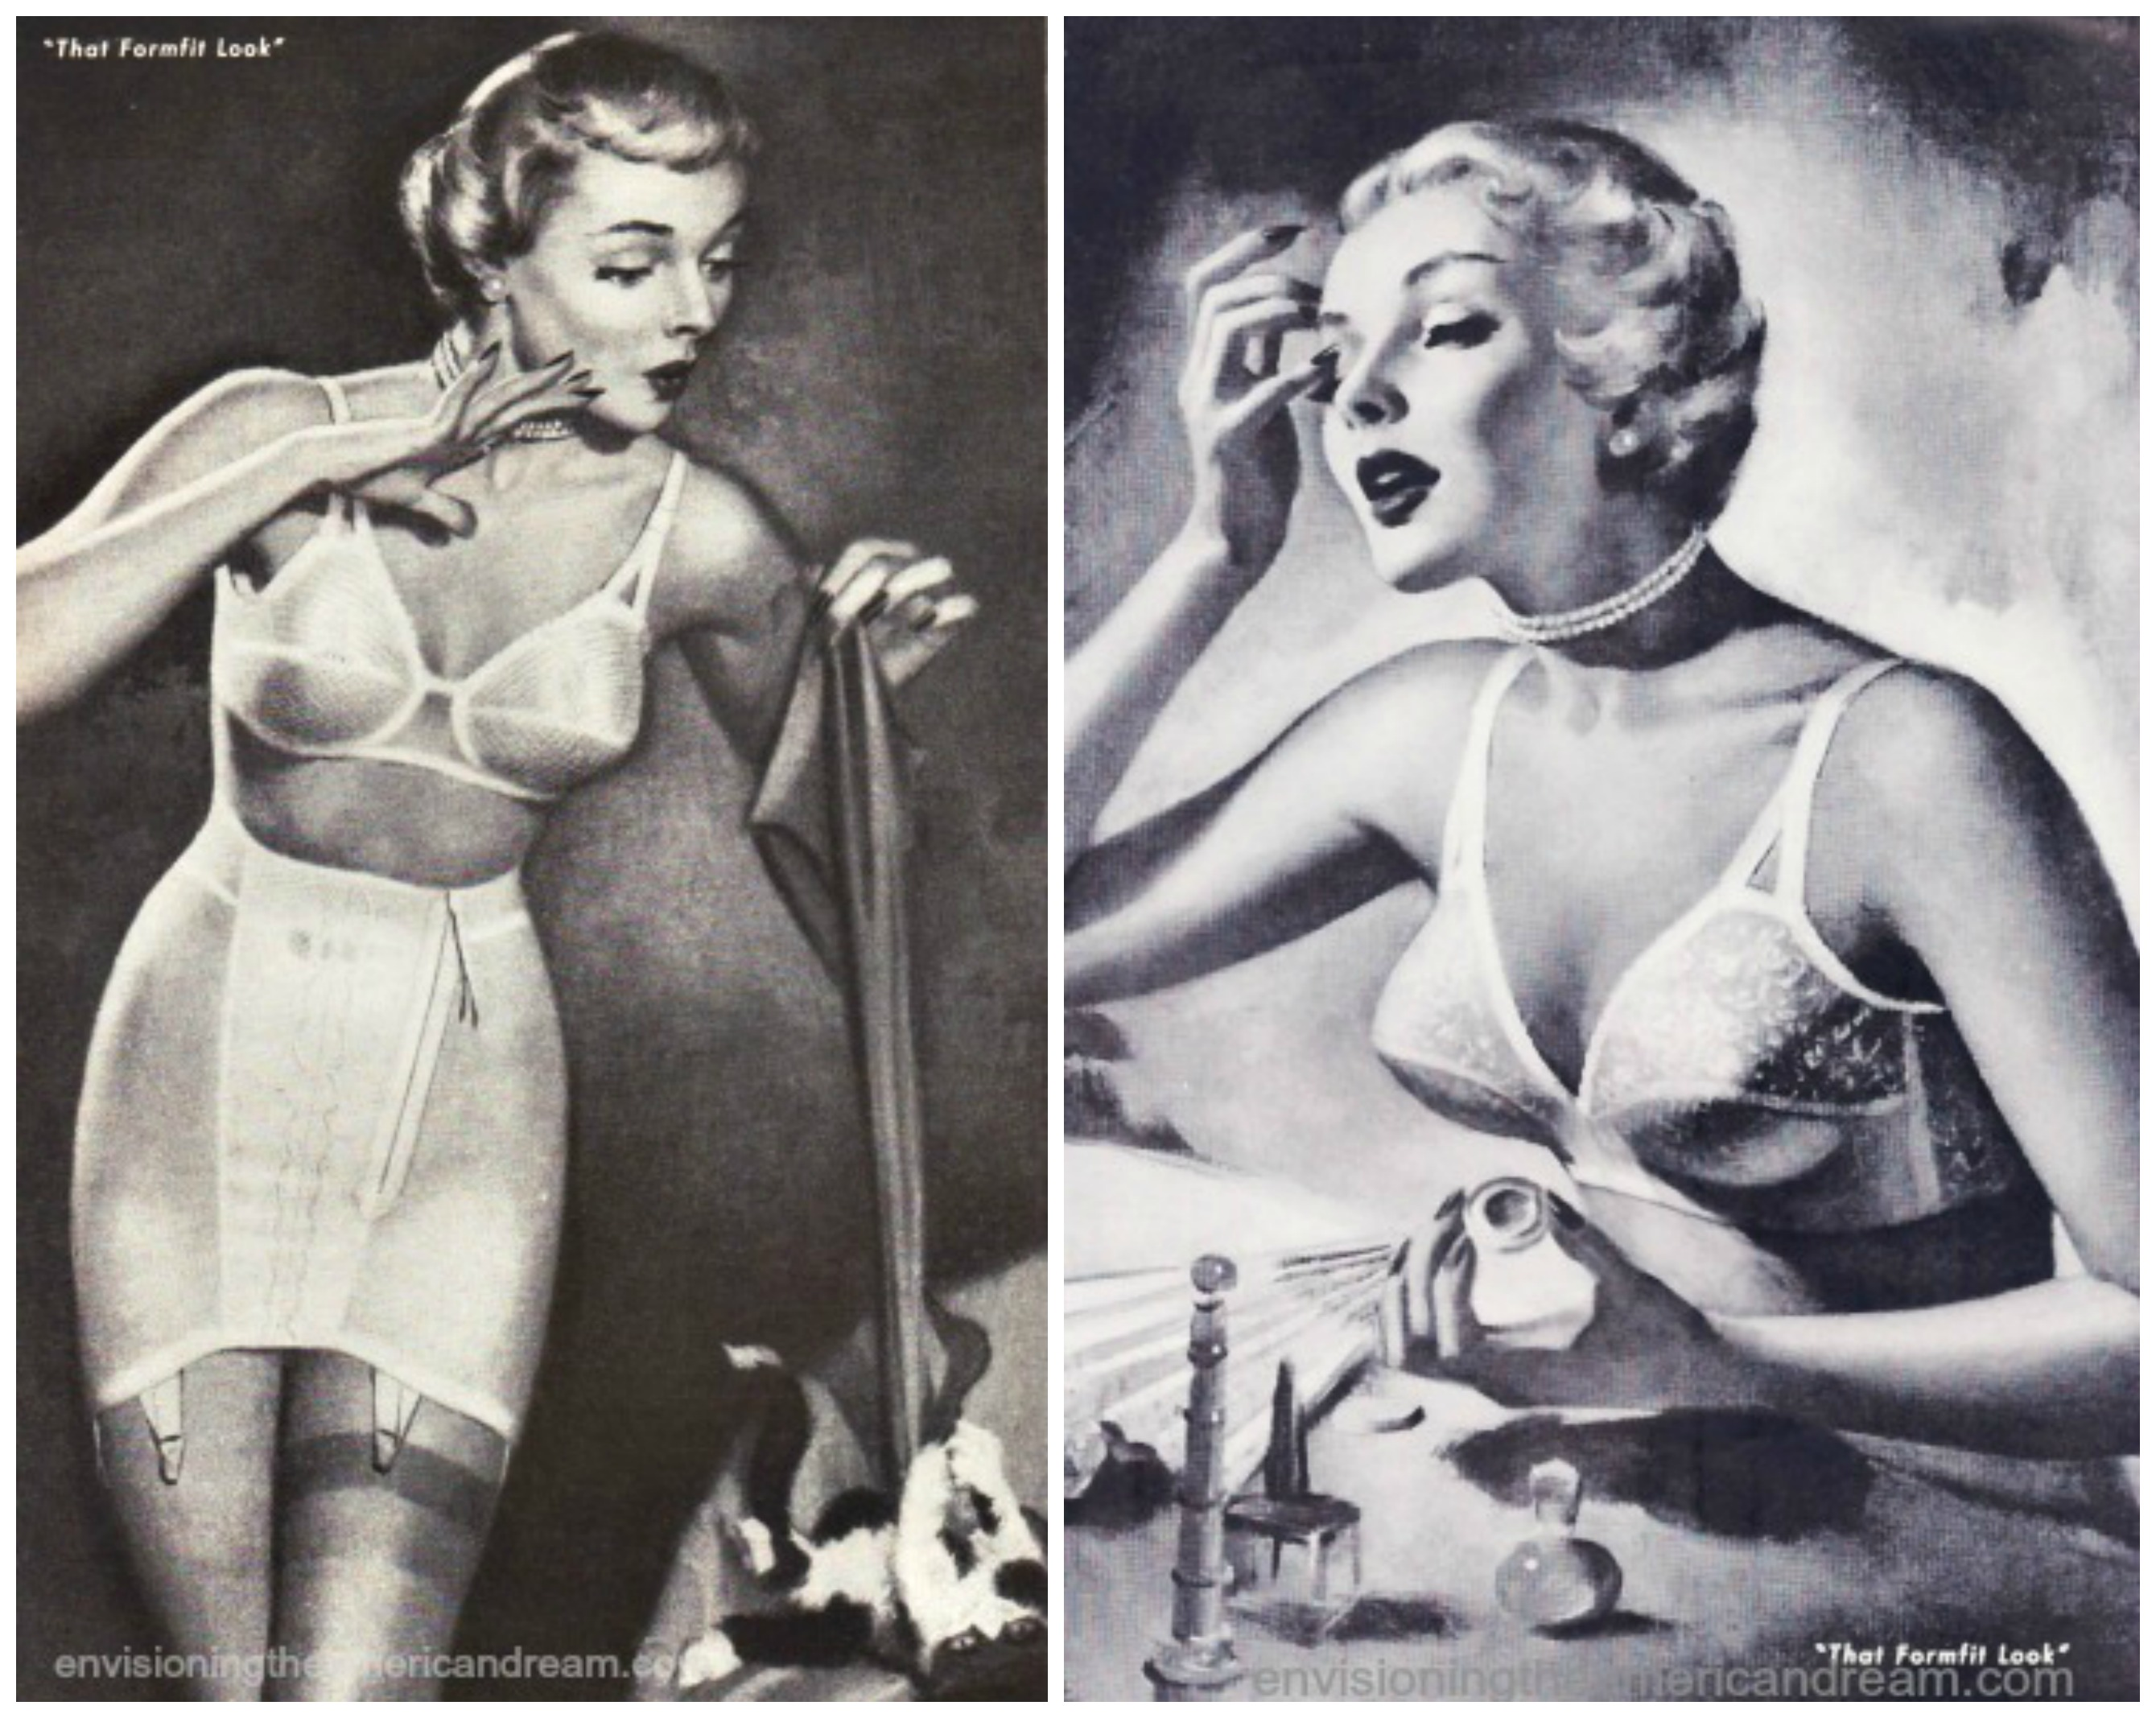 0164cc357 women in Lingerie girdles bras illustration 1950s. Vintage illustrations  from Formfit Life girdle ads ...